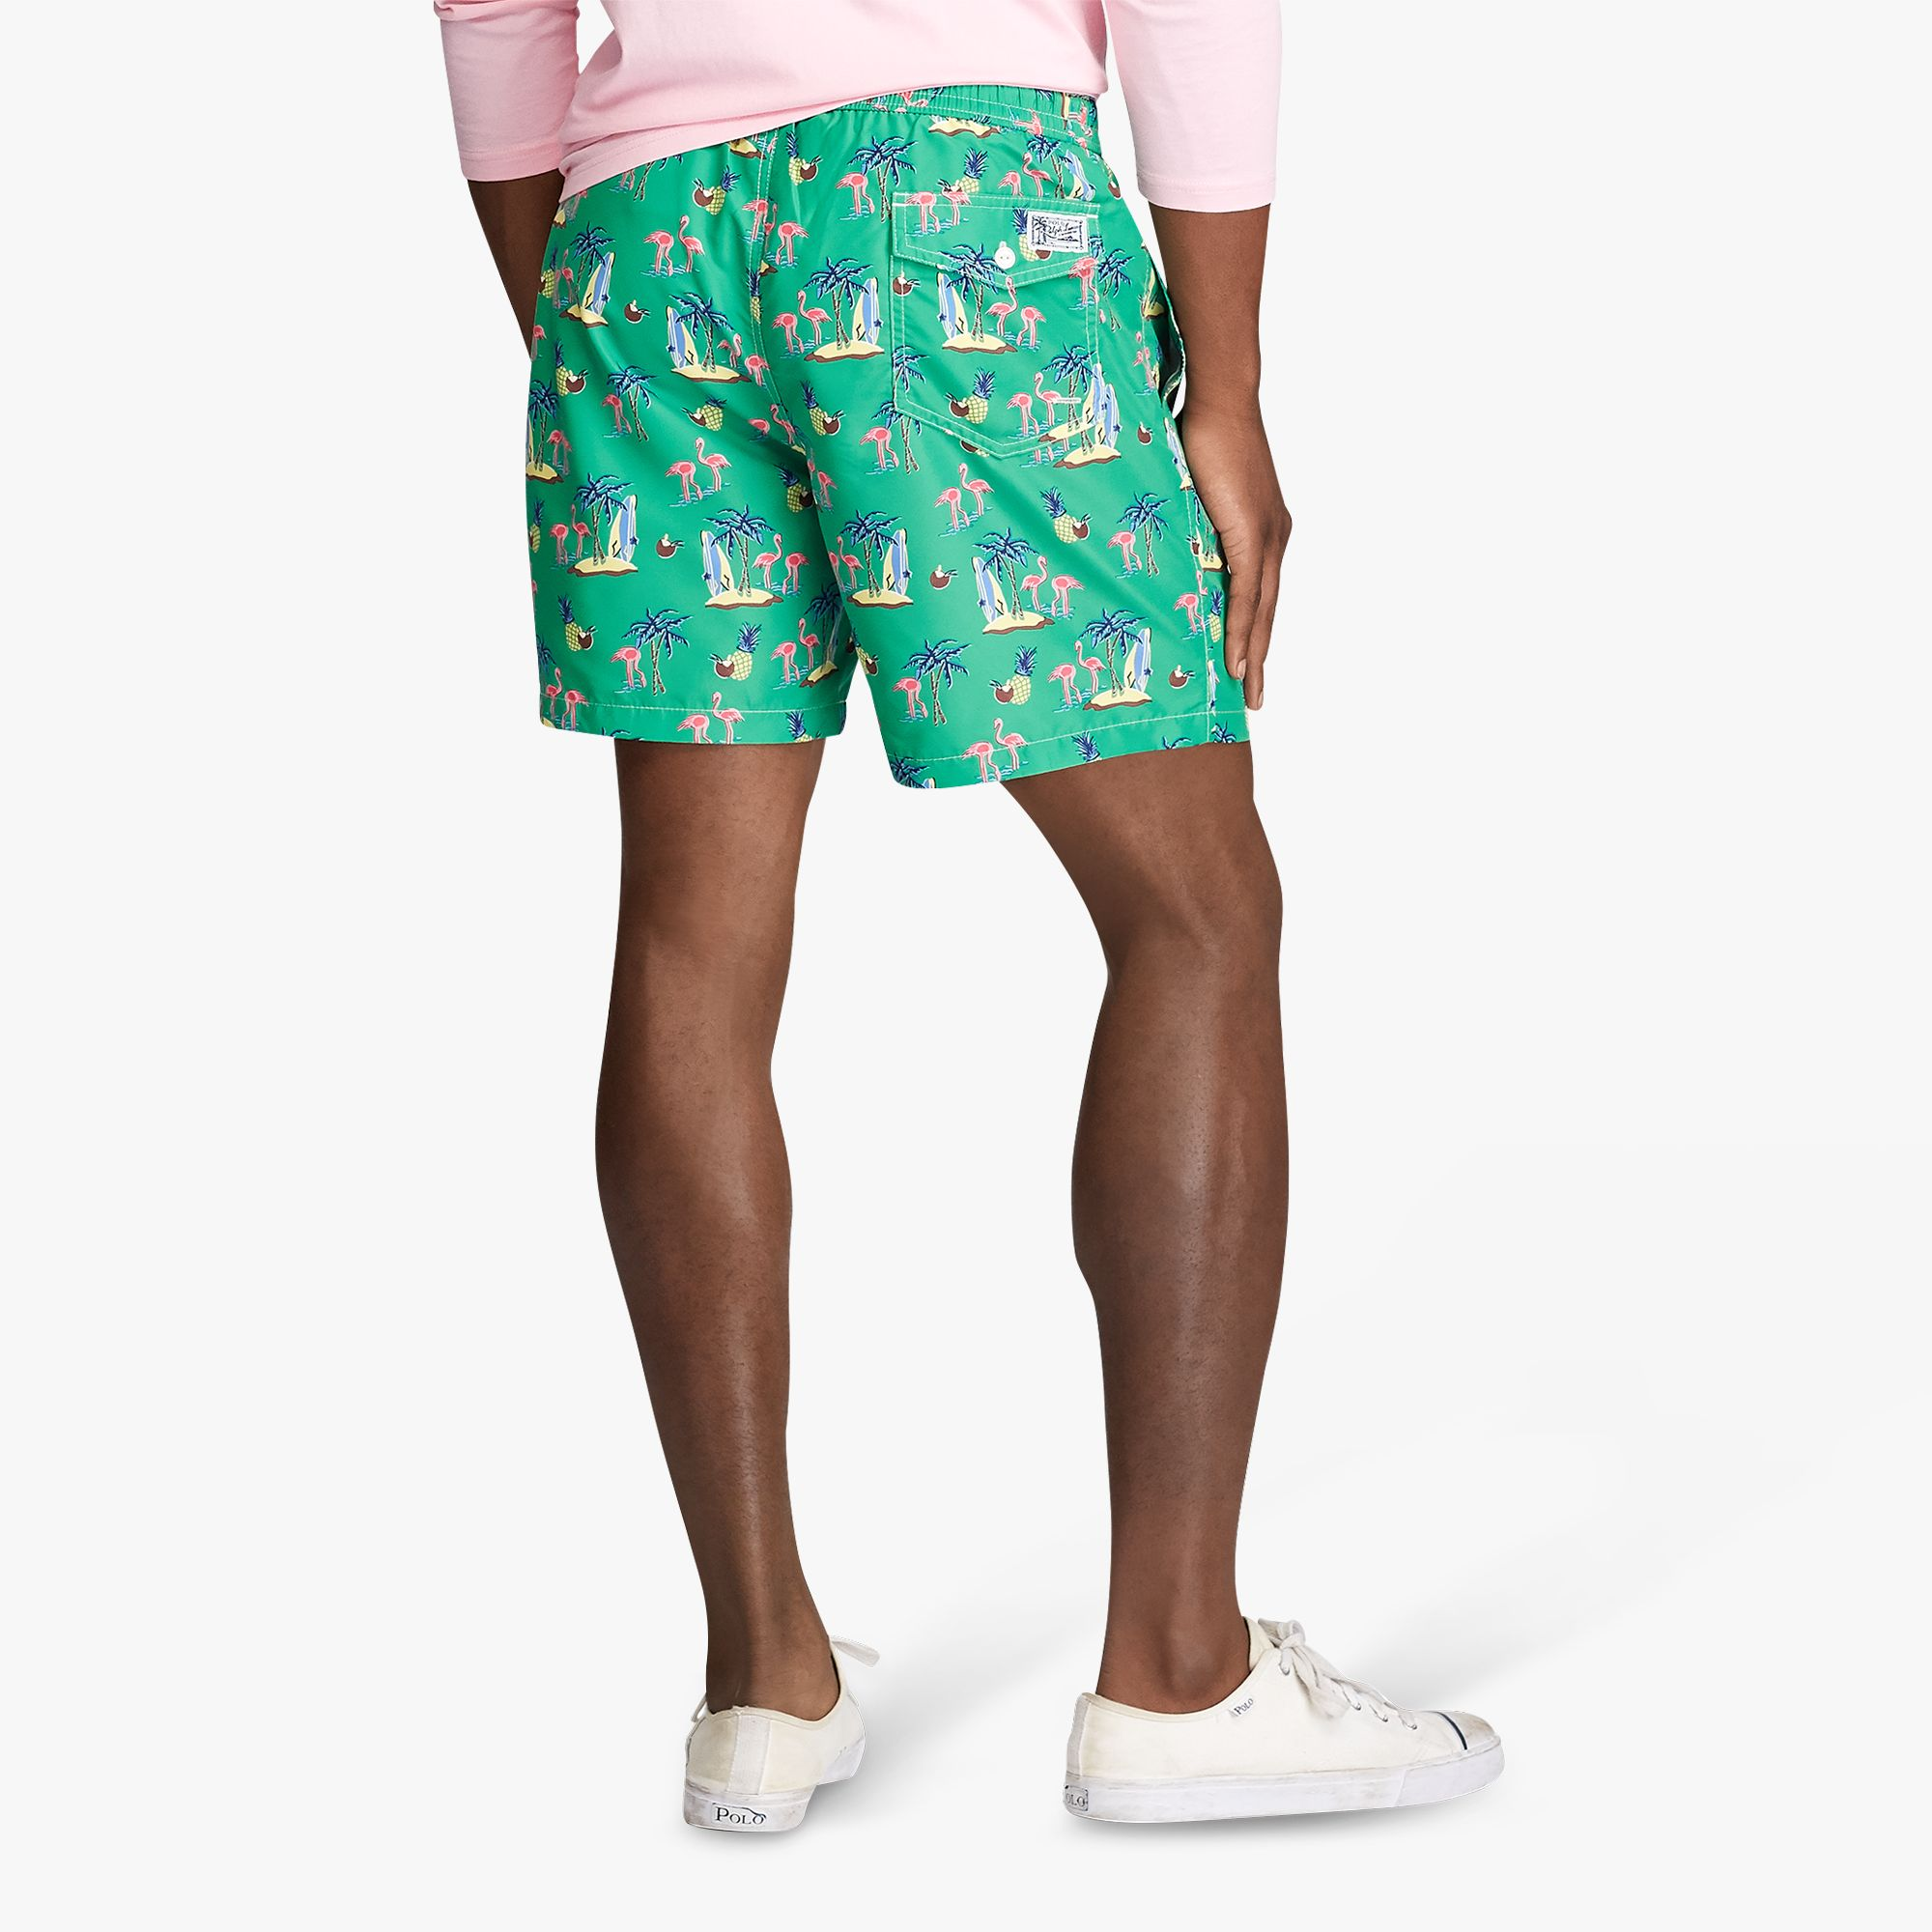 Ralph Lauren Polo Ralph Lauren Coconut Flamingos Swim Shorts, Coconut Flamingos